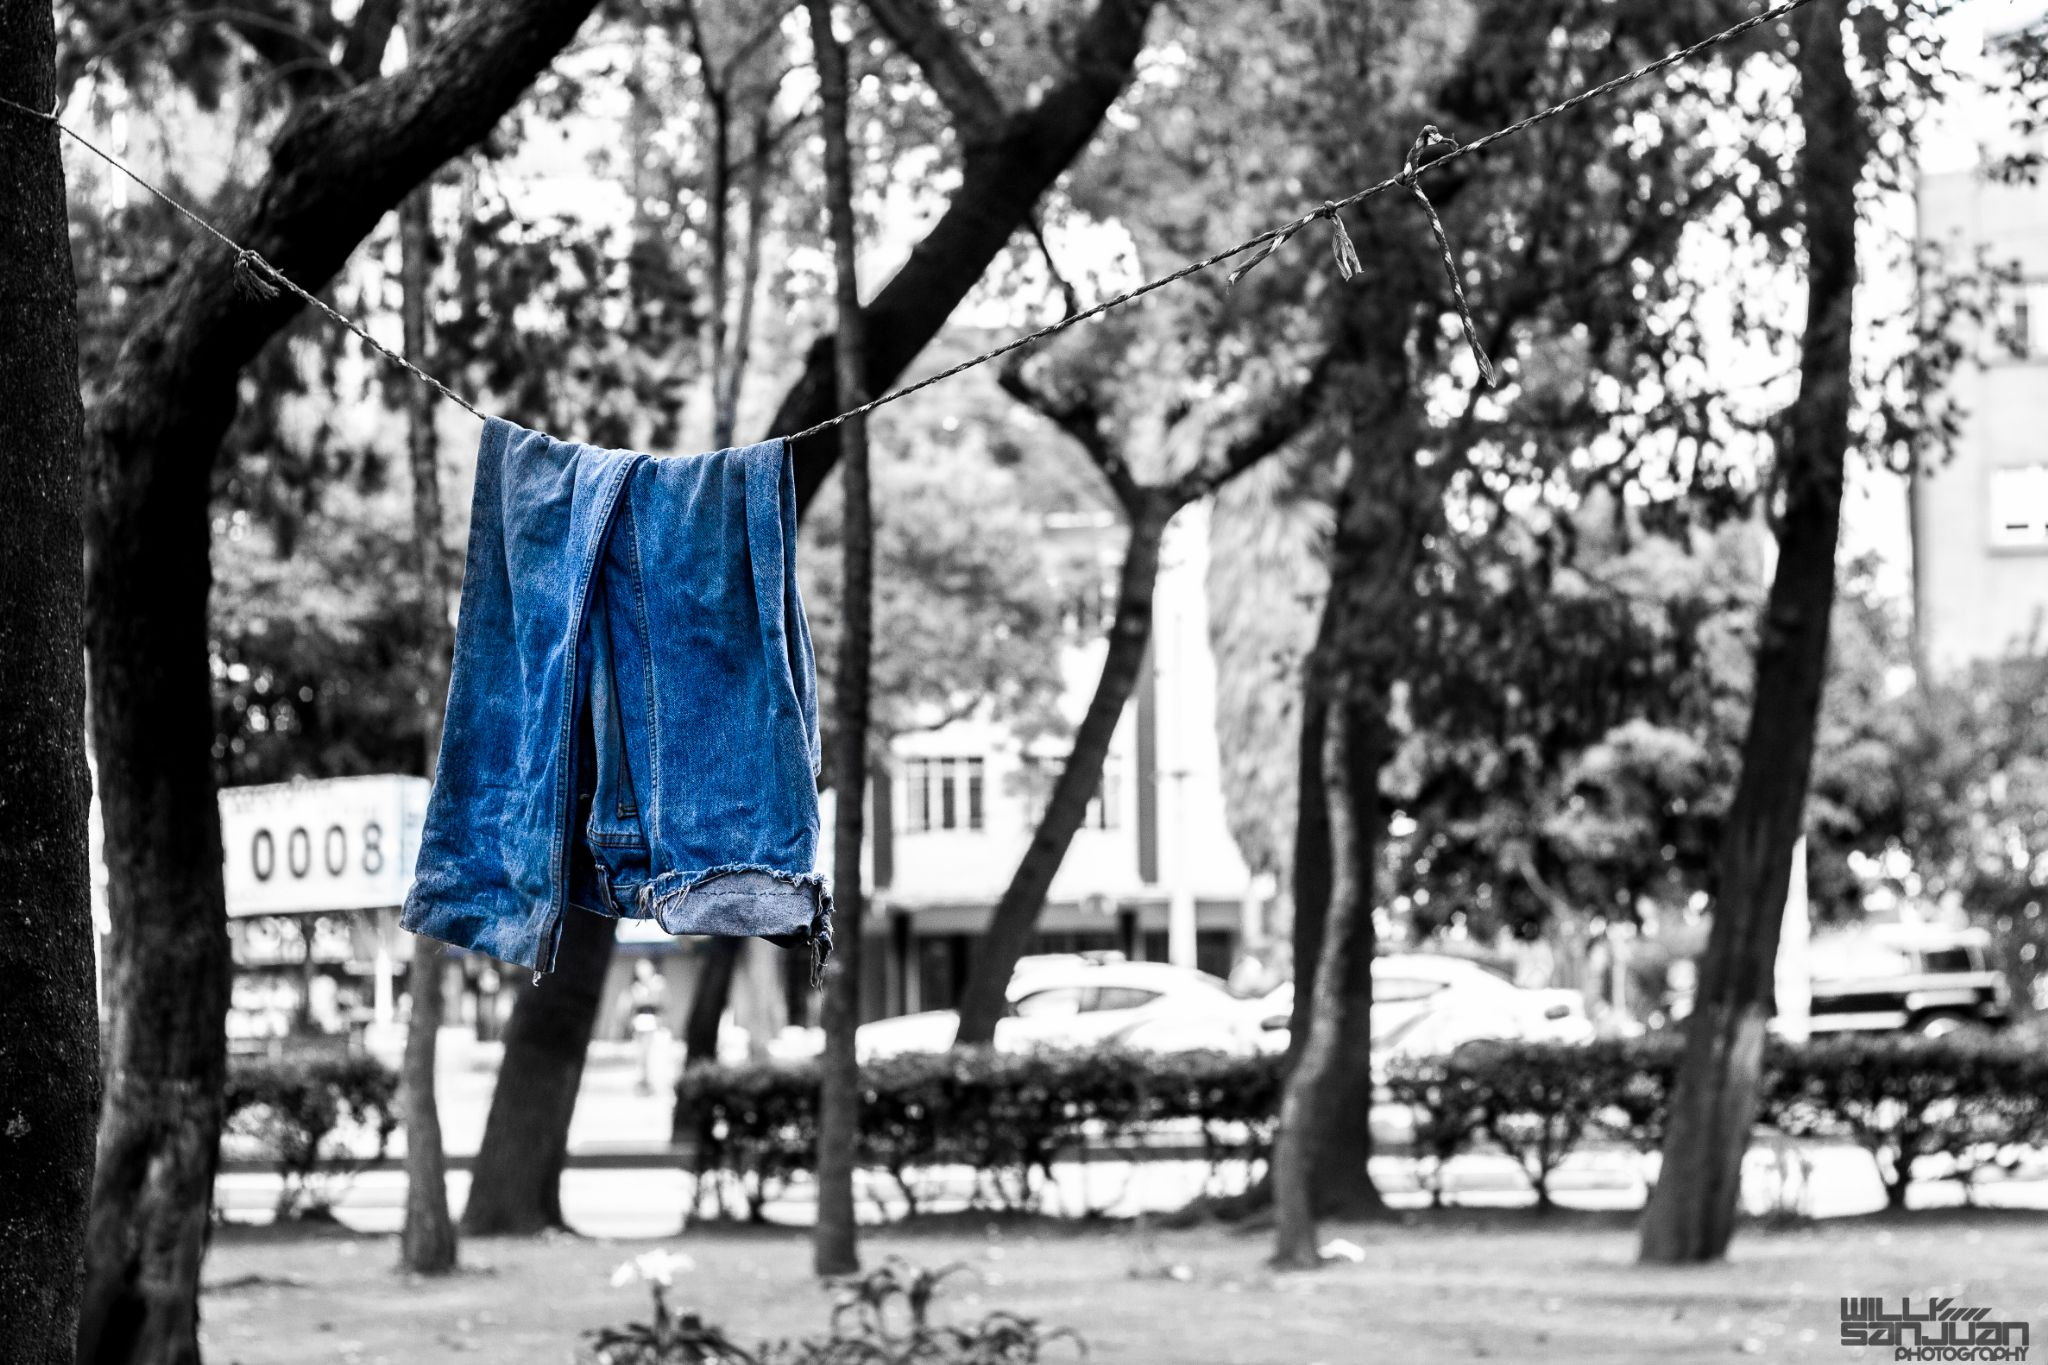 Homeless in Blue Jeans by Willy Sanjuan